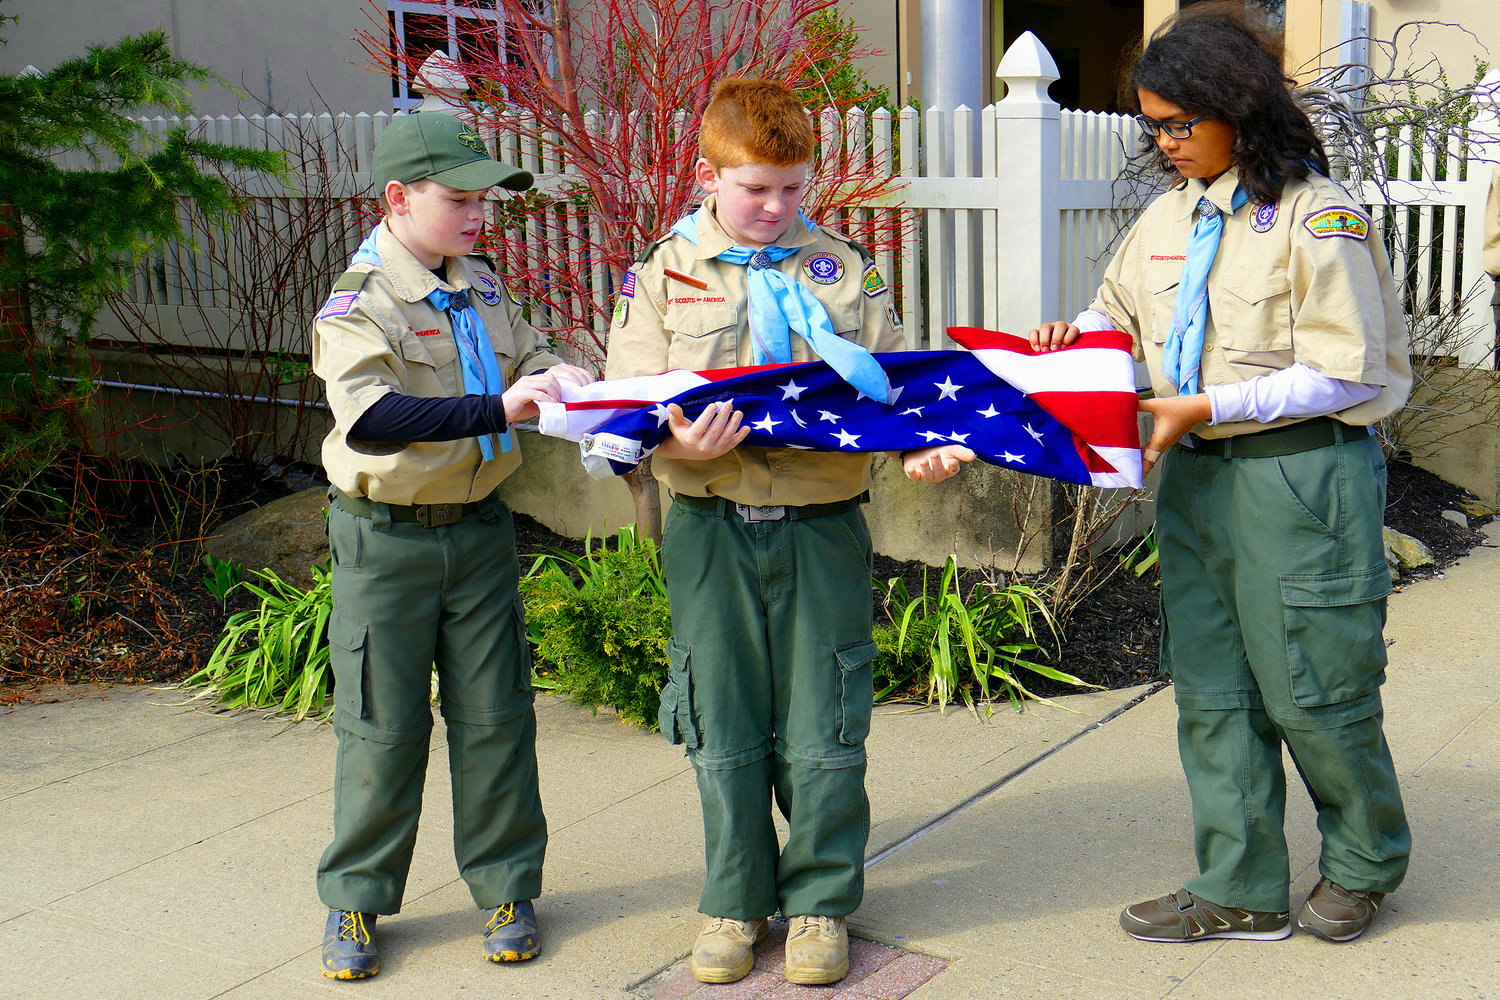 To open the festivities, Boy Scouts Max Einstman, far left, Alexander Krzeminski and Robert Schlageter unfurled an American flag and raised it.